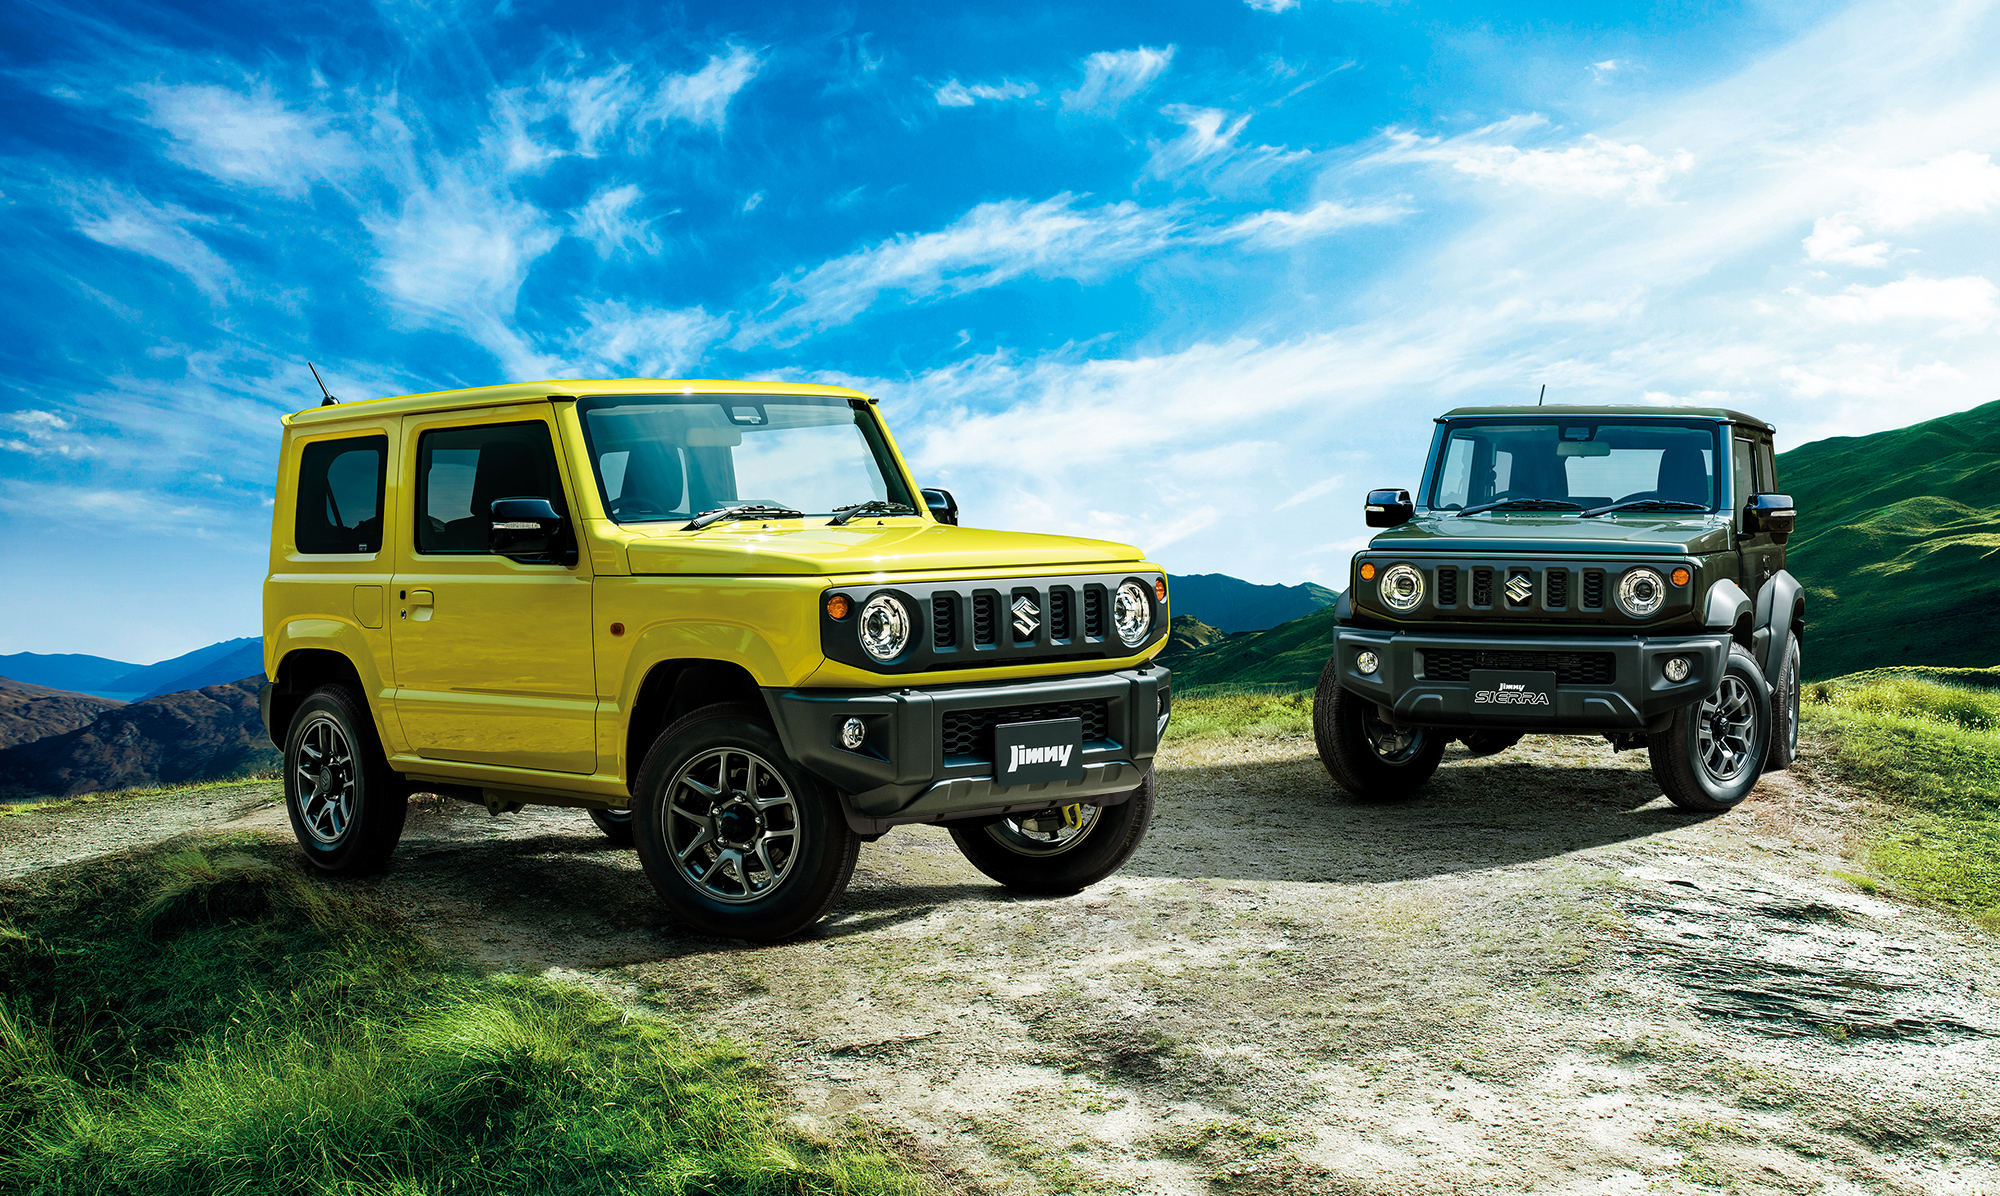 http://www.suzuki.co.jp/car/jimny/special/index/image/pc_cover.jpg